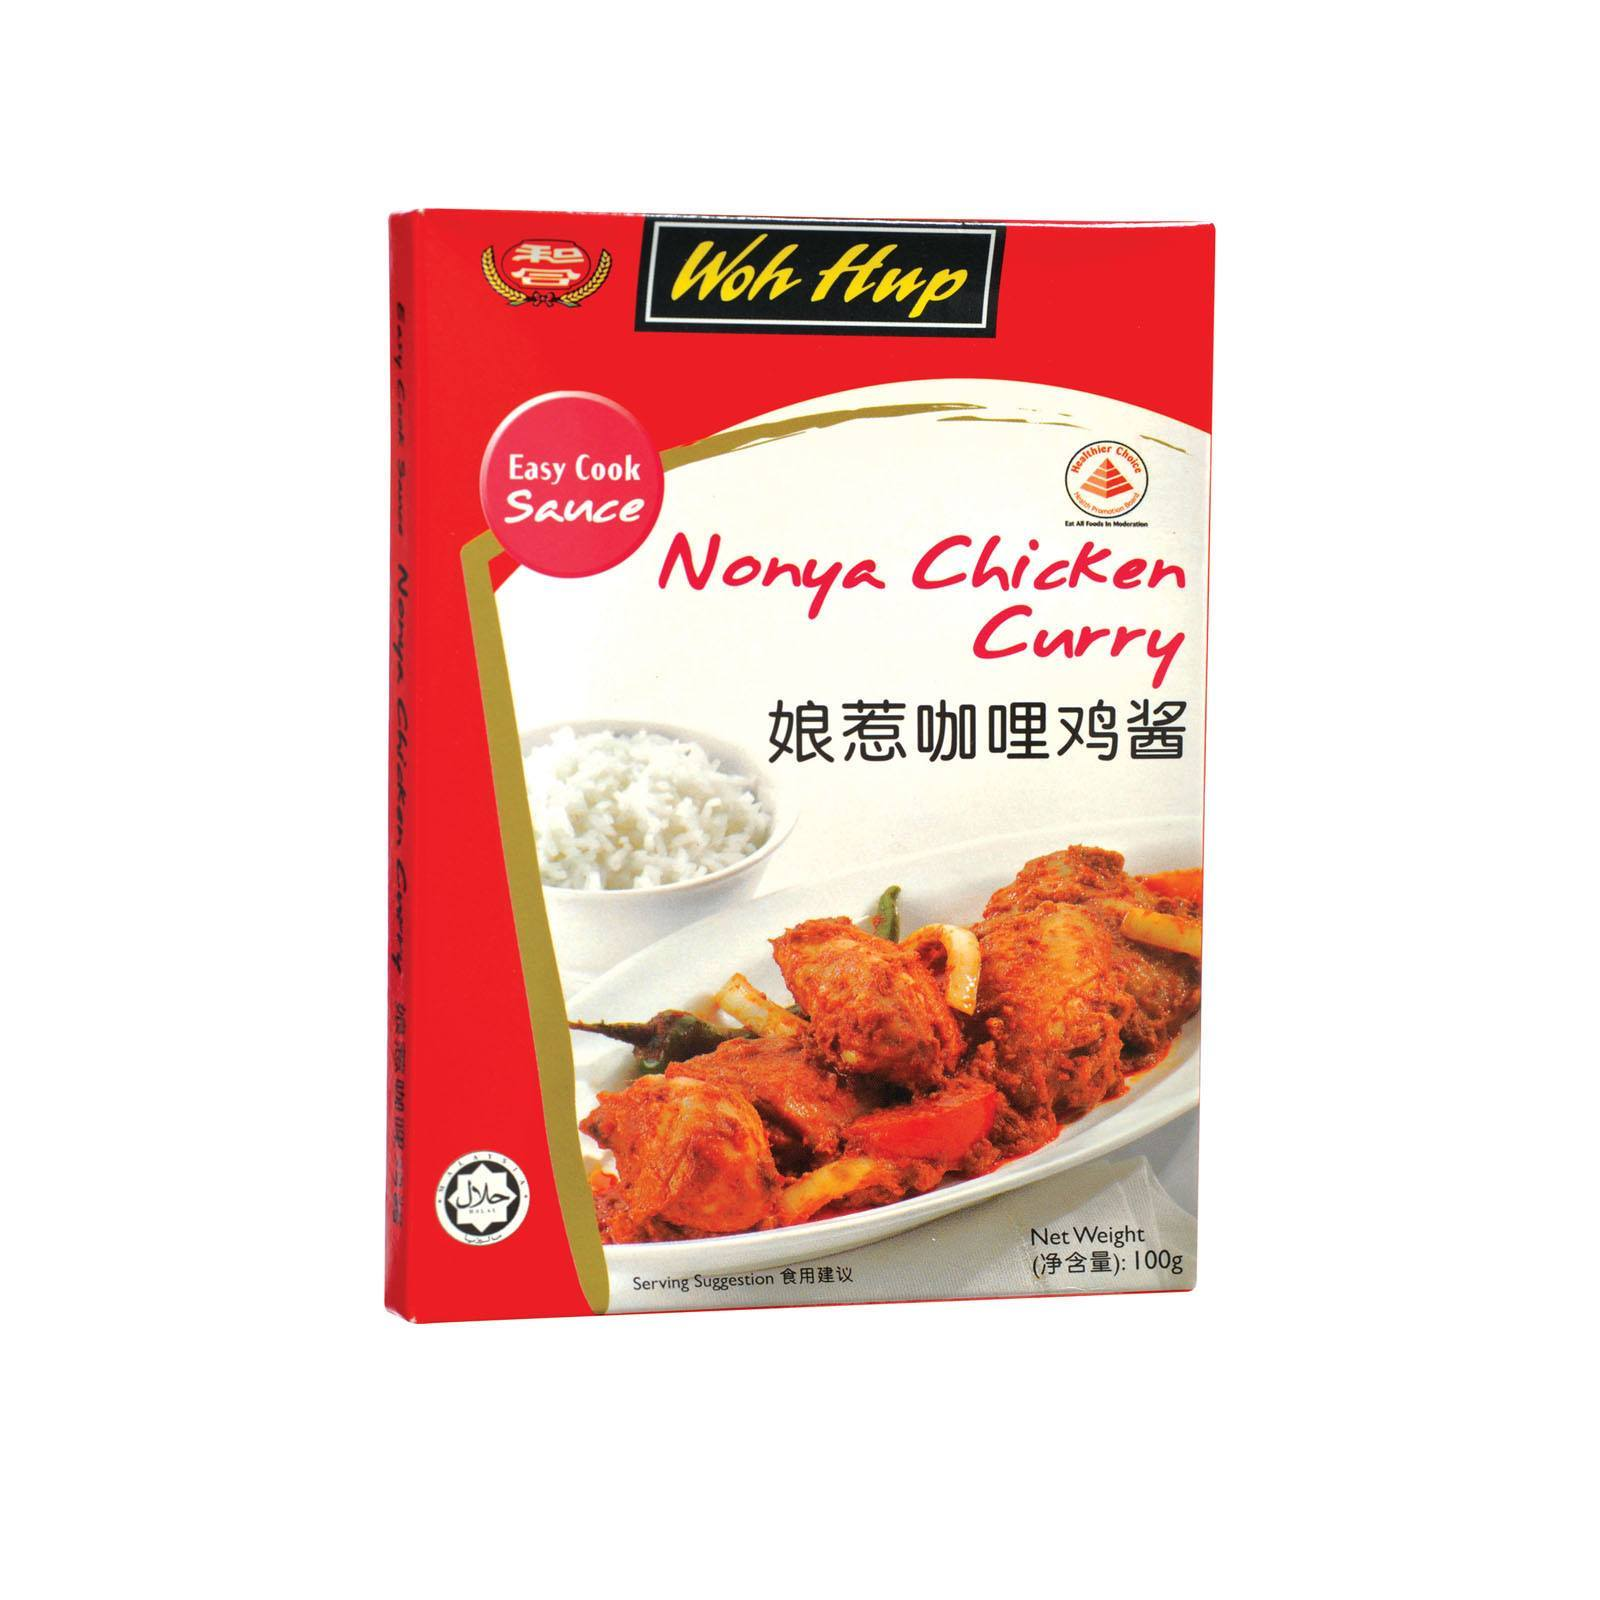 Nonya Chicken Curry Sauce 6x(12x100g) Woh Hup | Product Type : Sauce ...